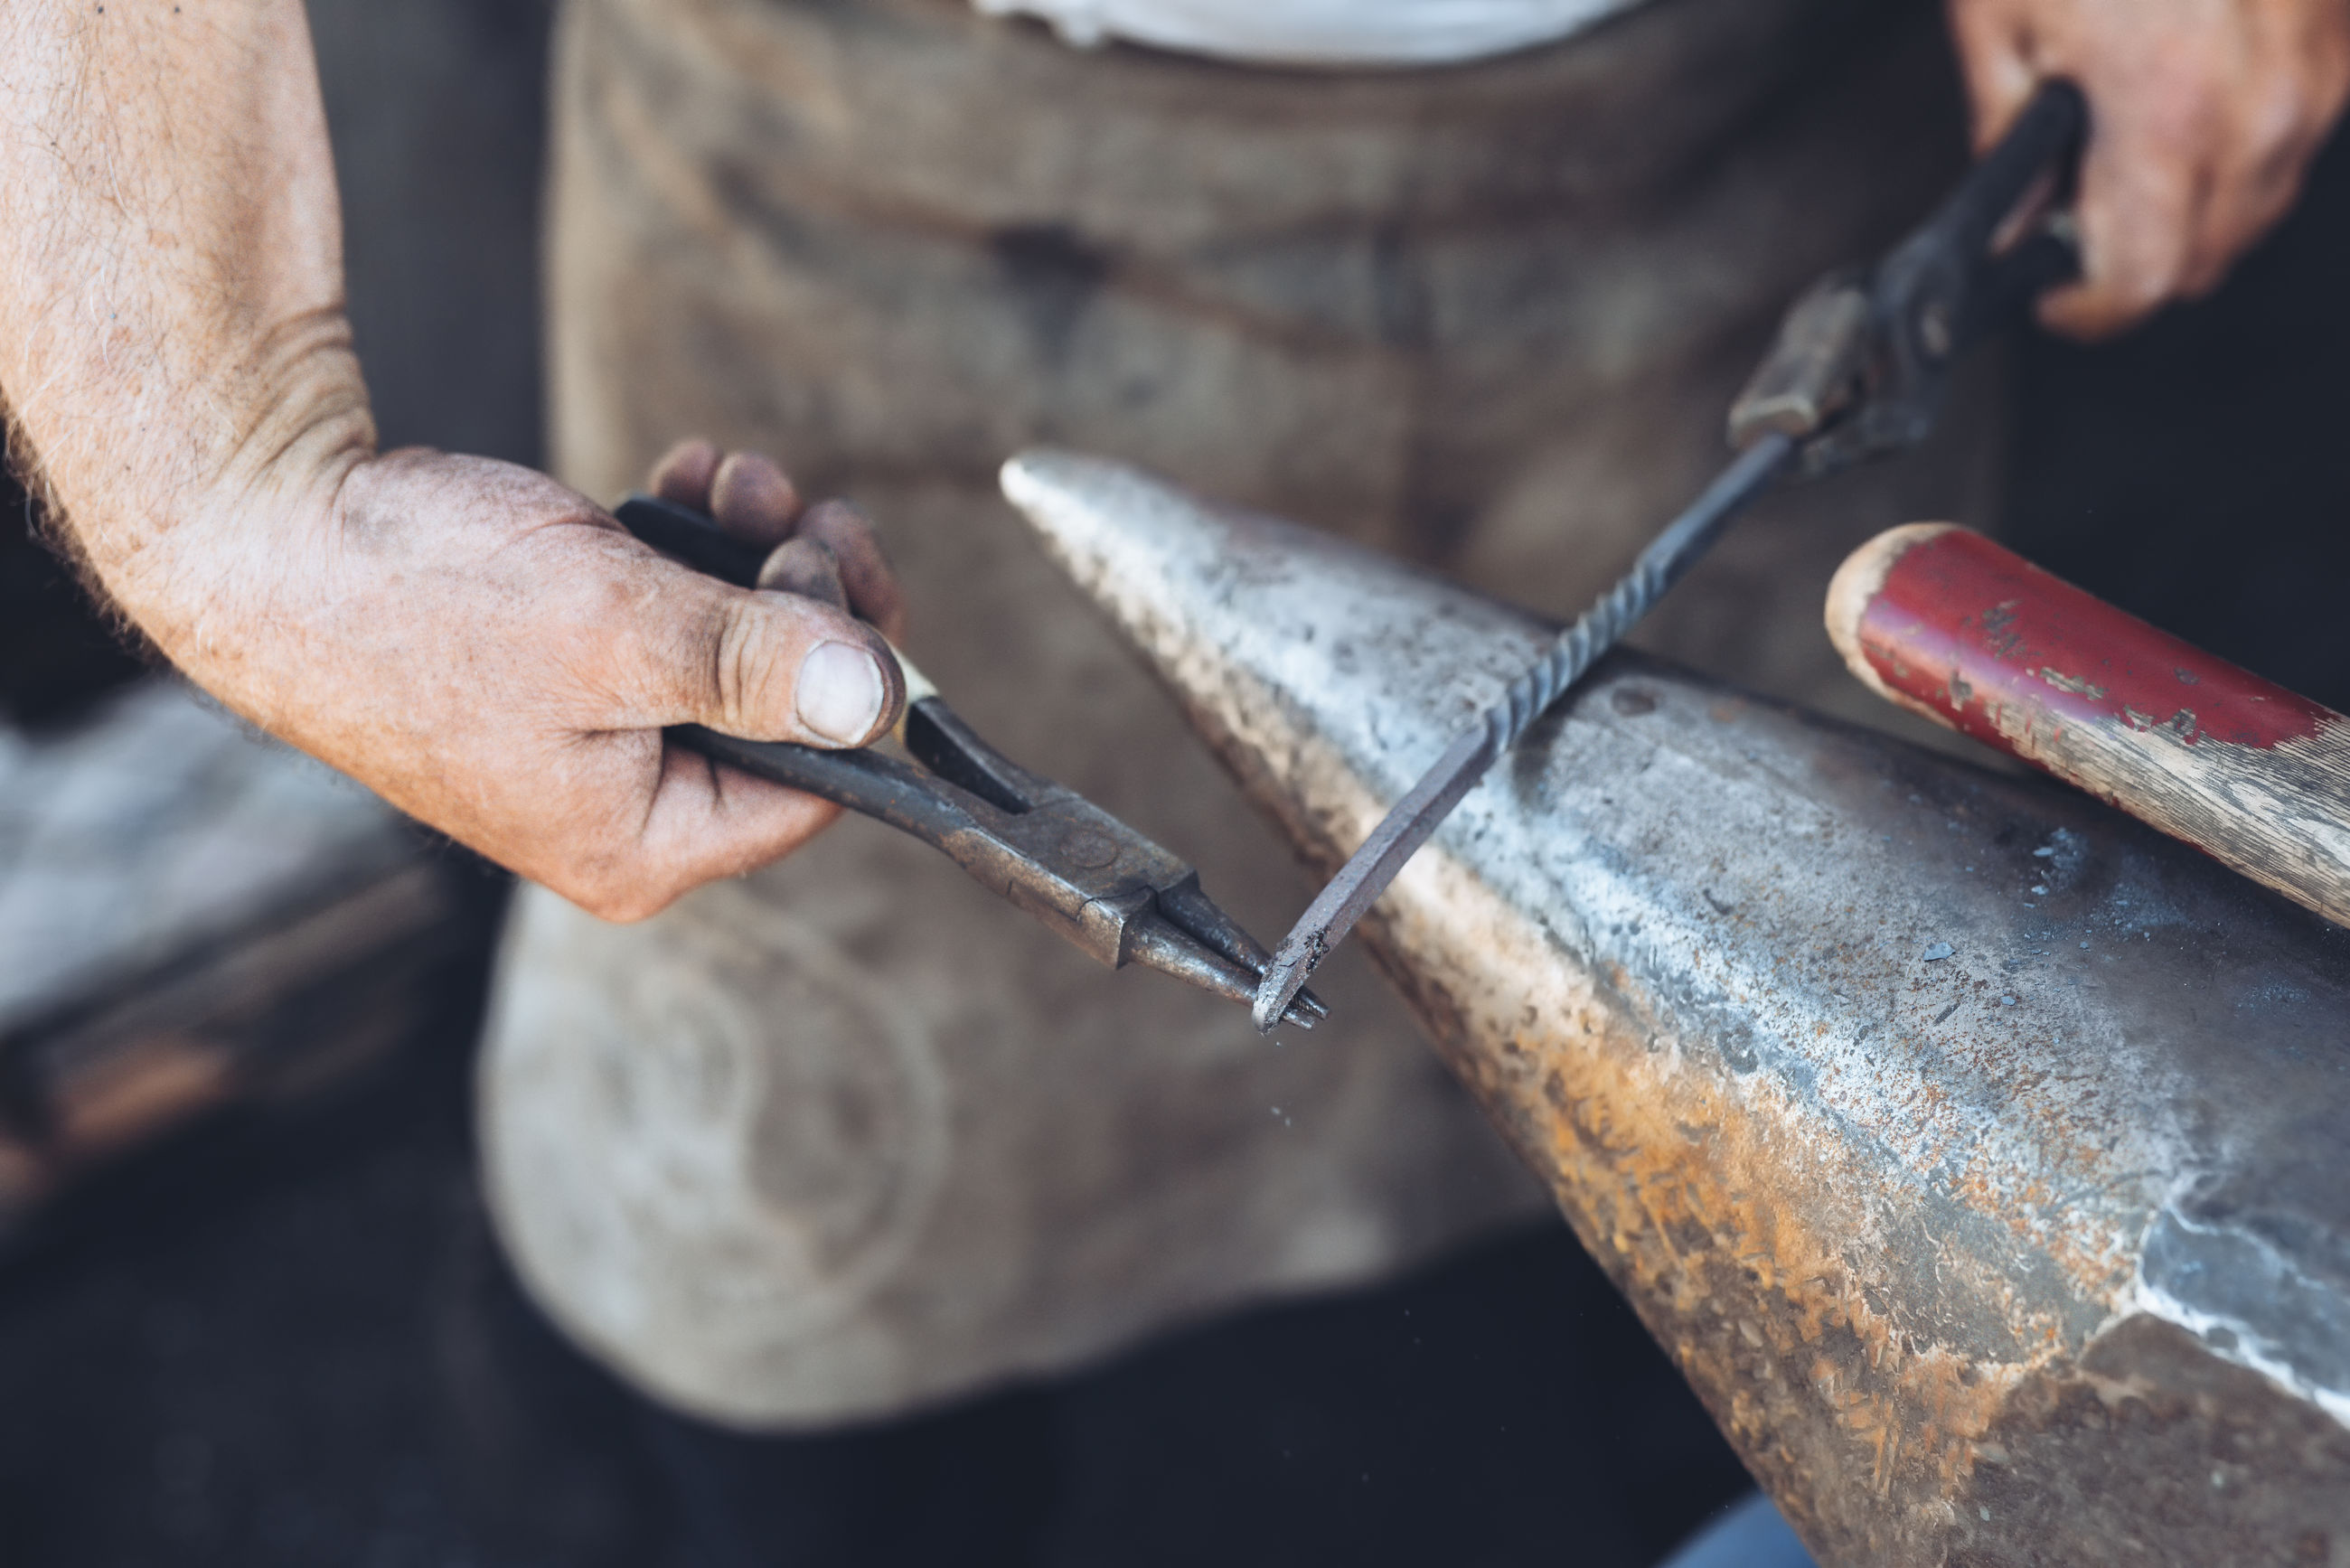 Midsection of man working on metal at workshop